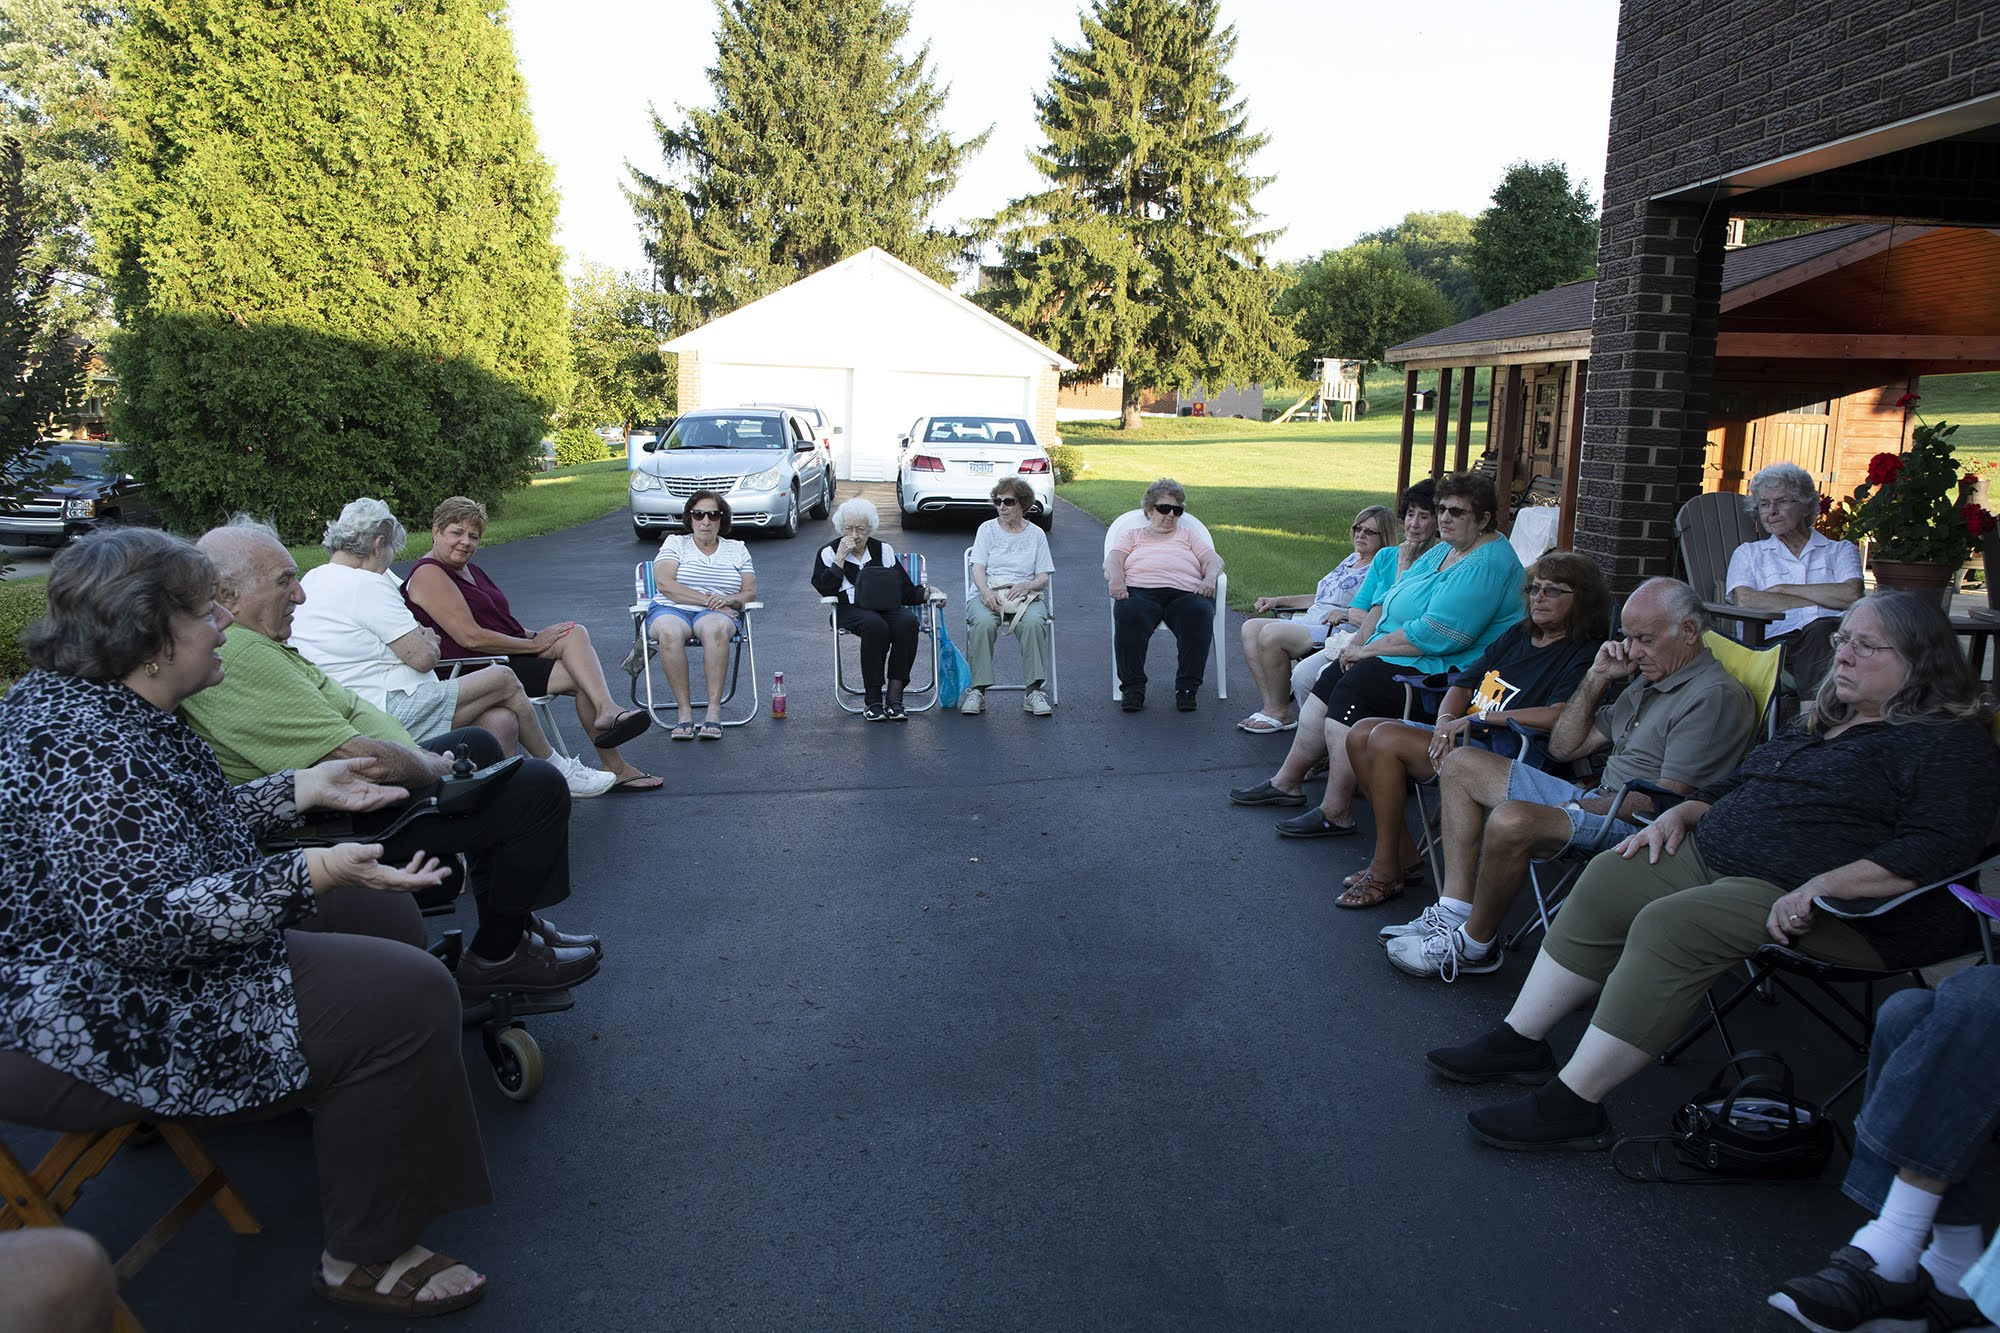 A meeting between plaintiffs at a house in Monongahela, Pa. on August 9, 2018. (Photo by Kat Procyk/PublicSource)